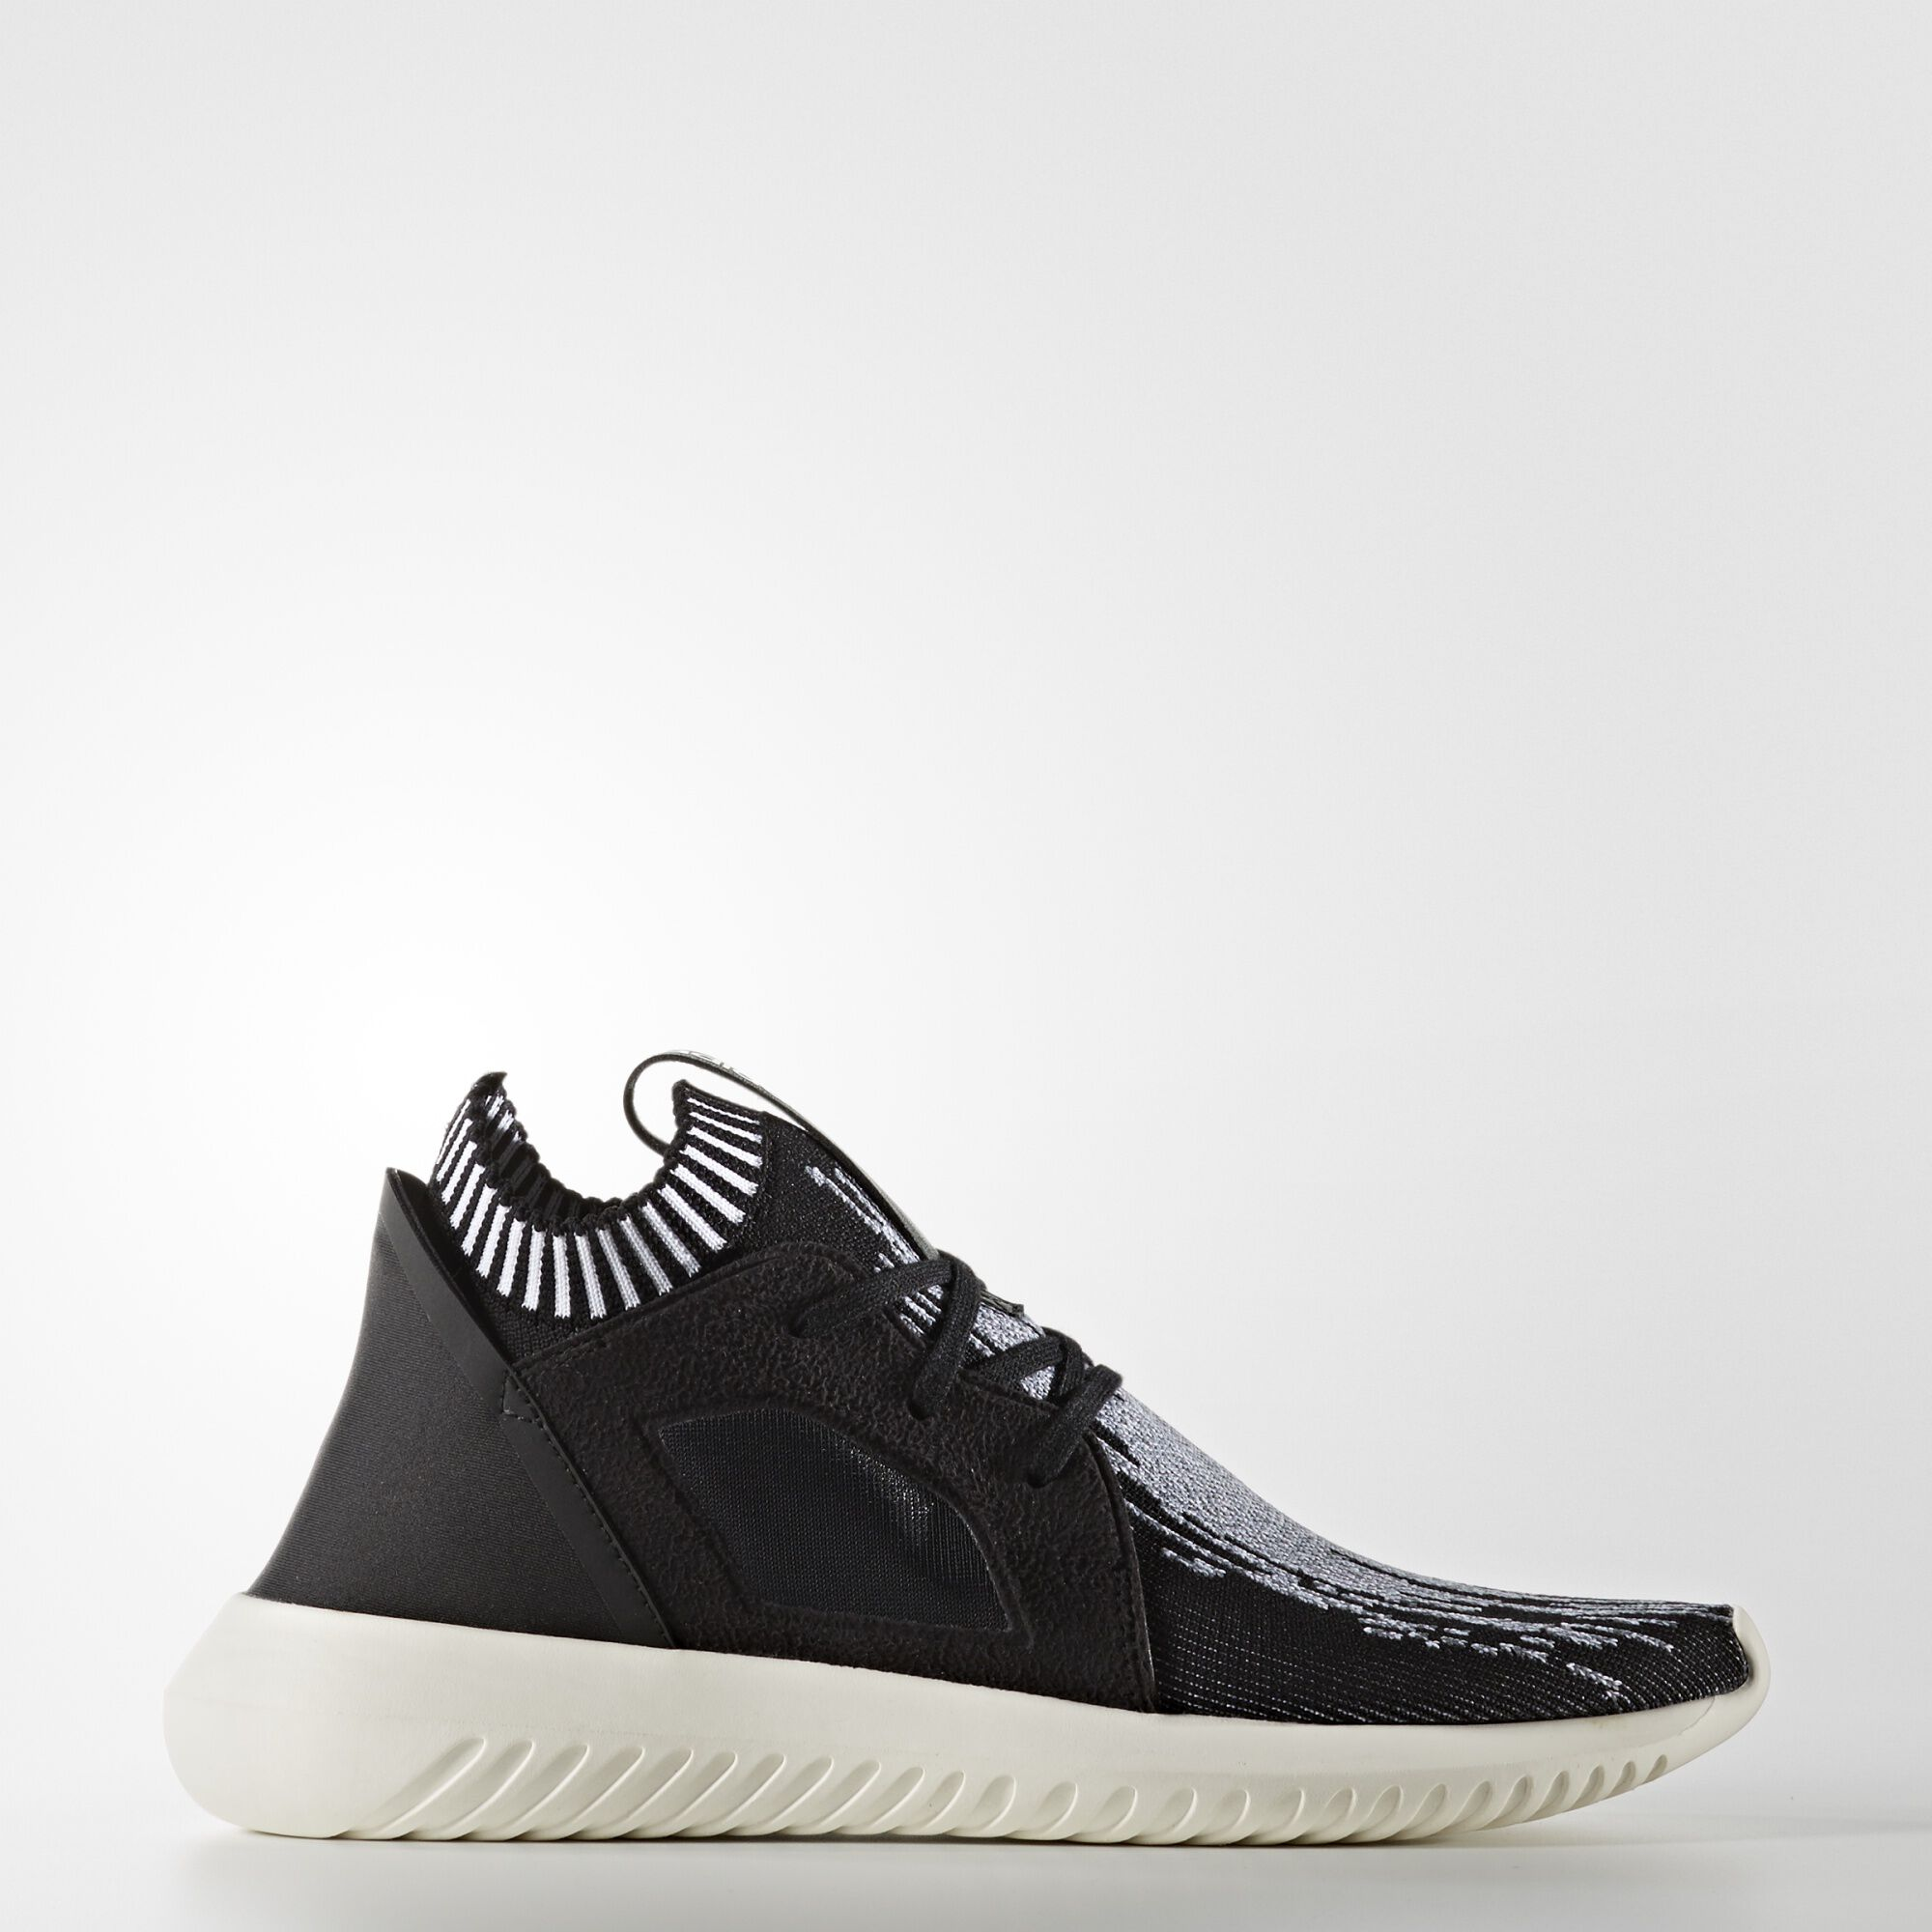 adidas Originals Shoes Clothing amp Gear  adidas Originals